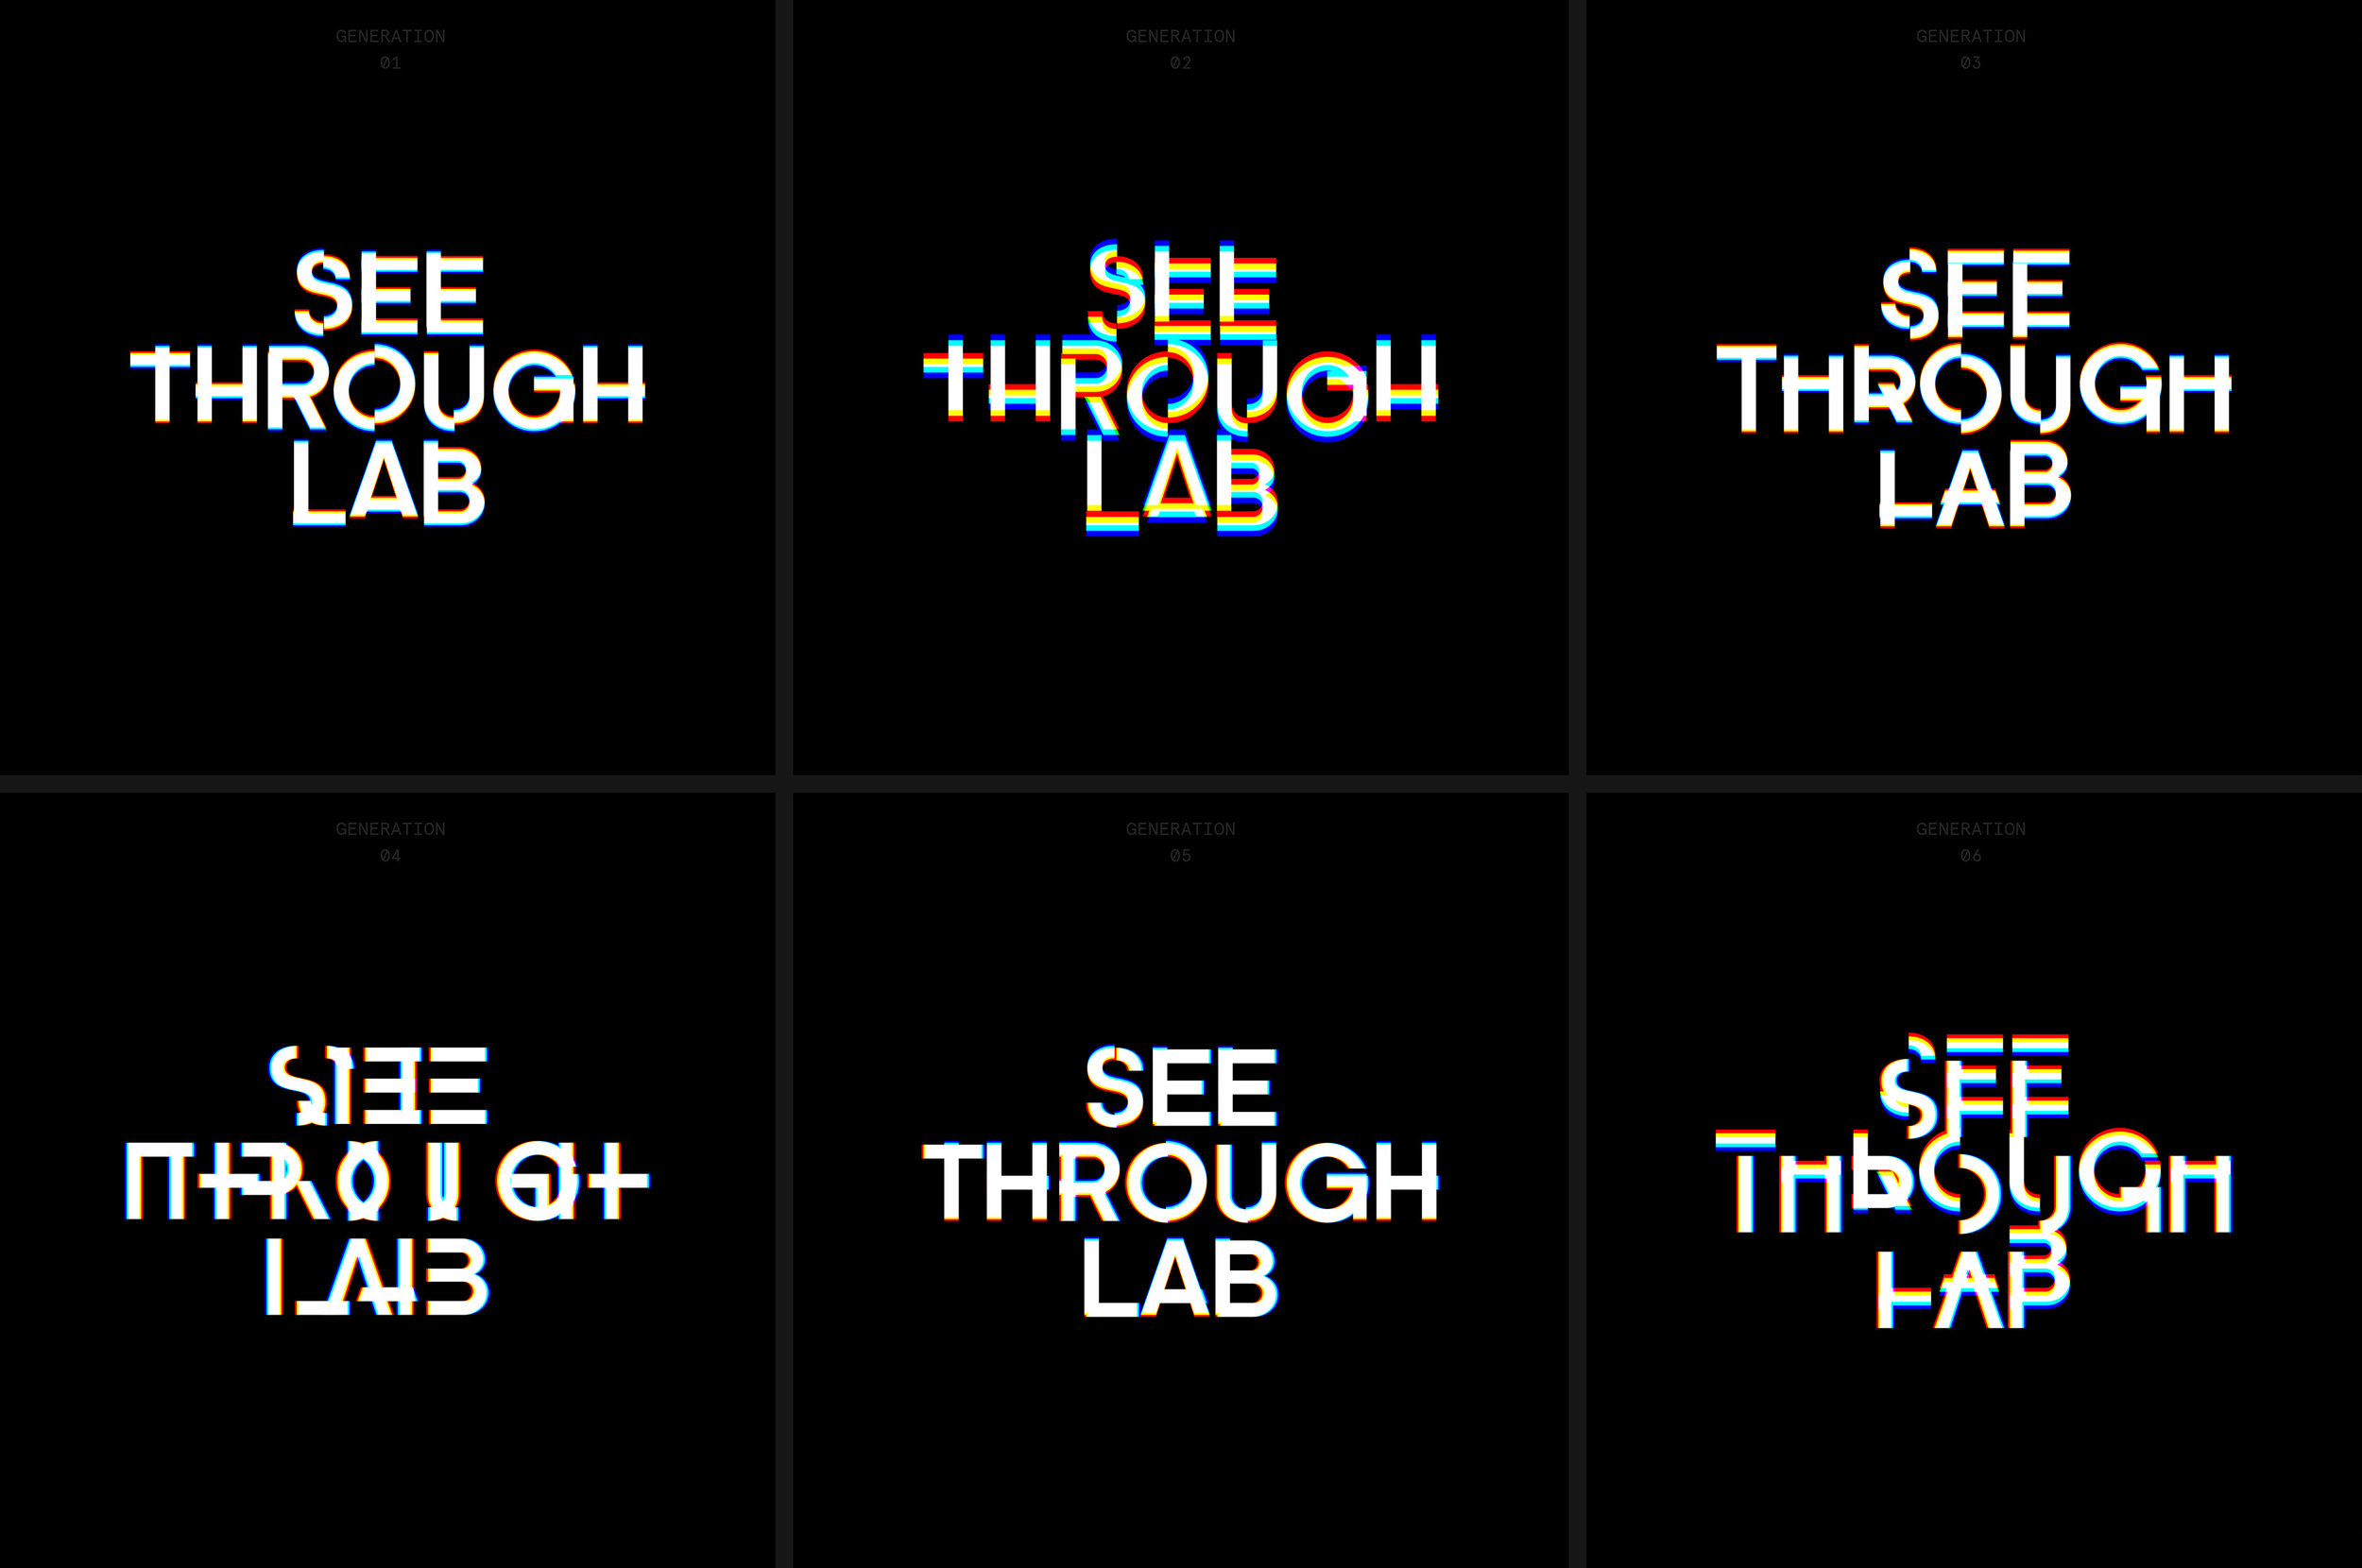 TheCollectedWorks_SeeThroughLab_171.jpg